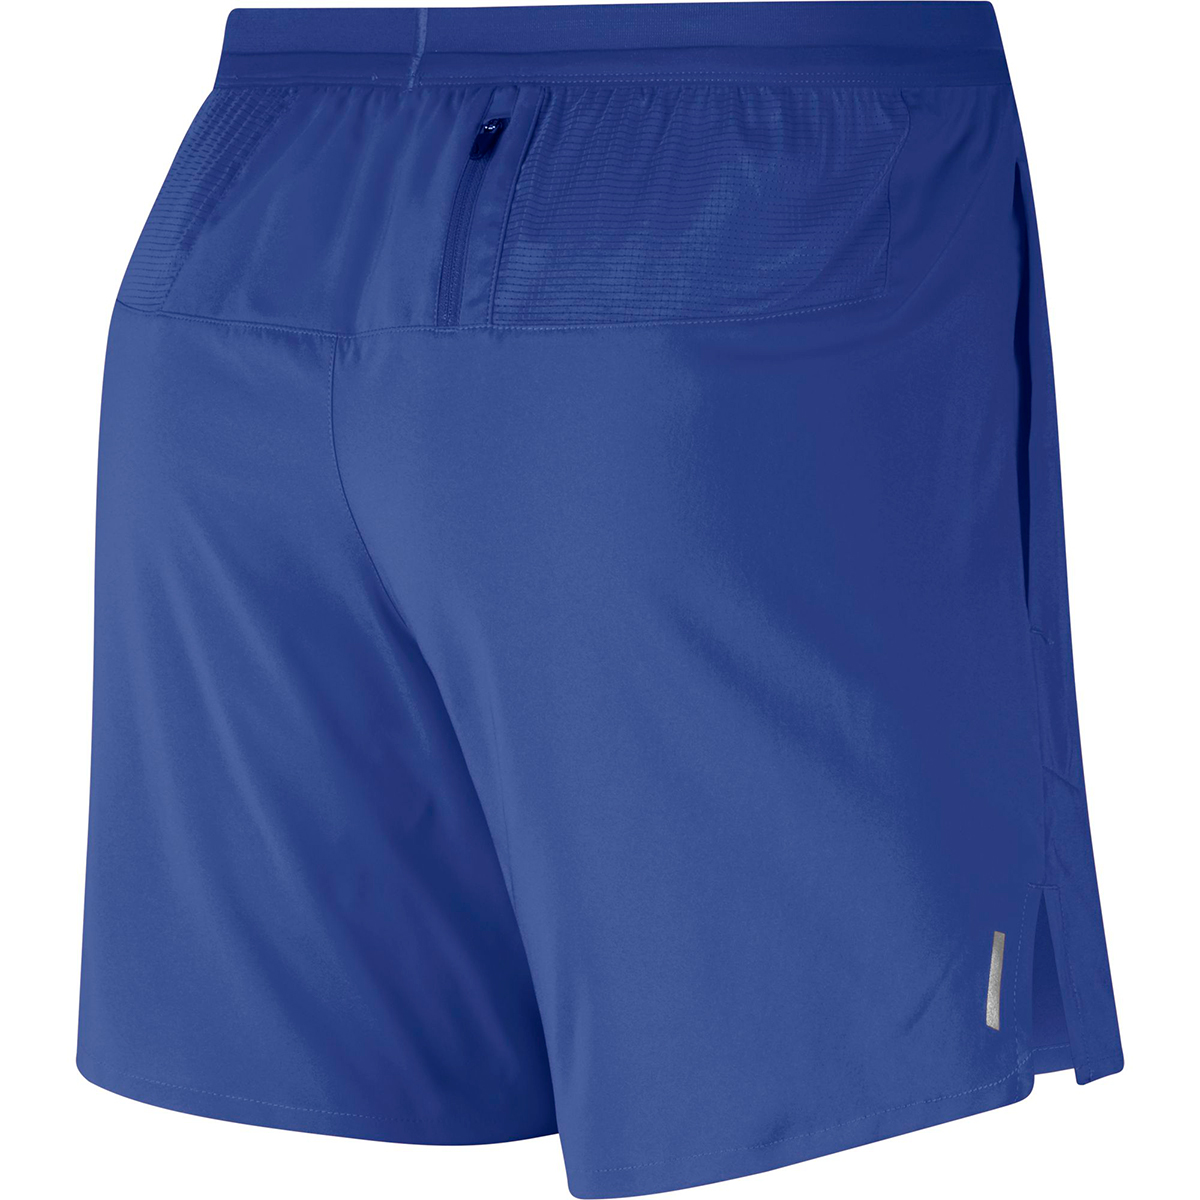 """Men's Nike Flex Stride 7"""" 2-In-1 Running Shorts - Color: Astronomy Blue/Royal Pulse - Size: M, Astronomy Blue/Royal Pulse, large, image 7"""